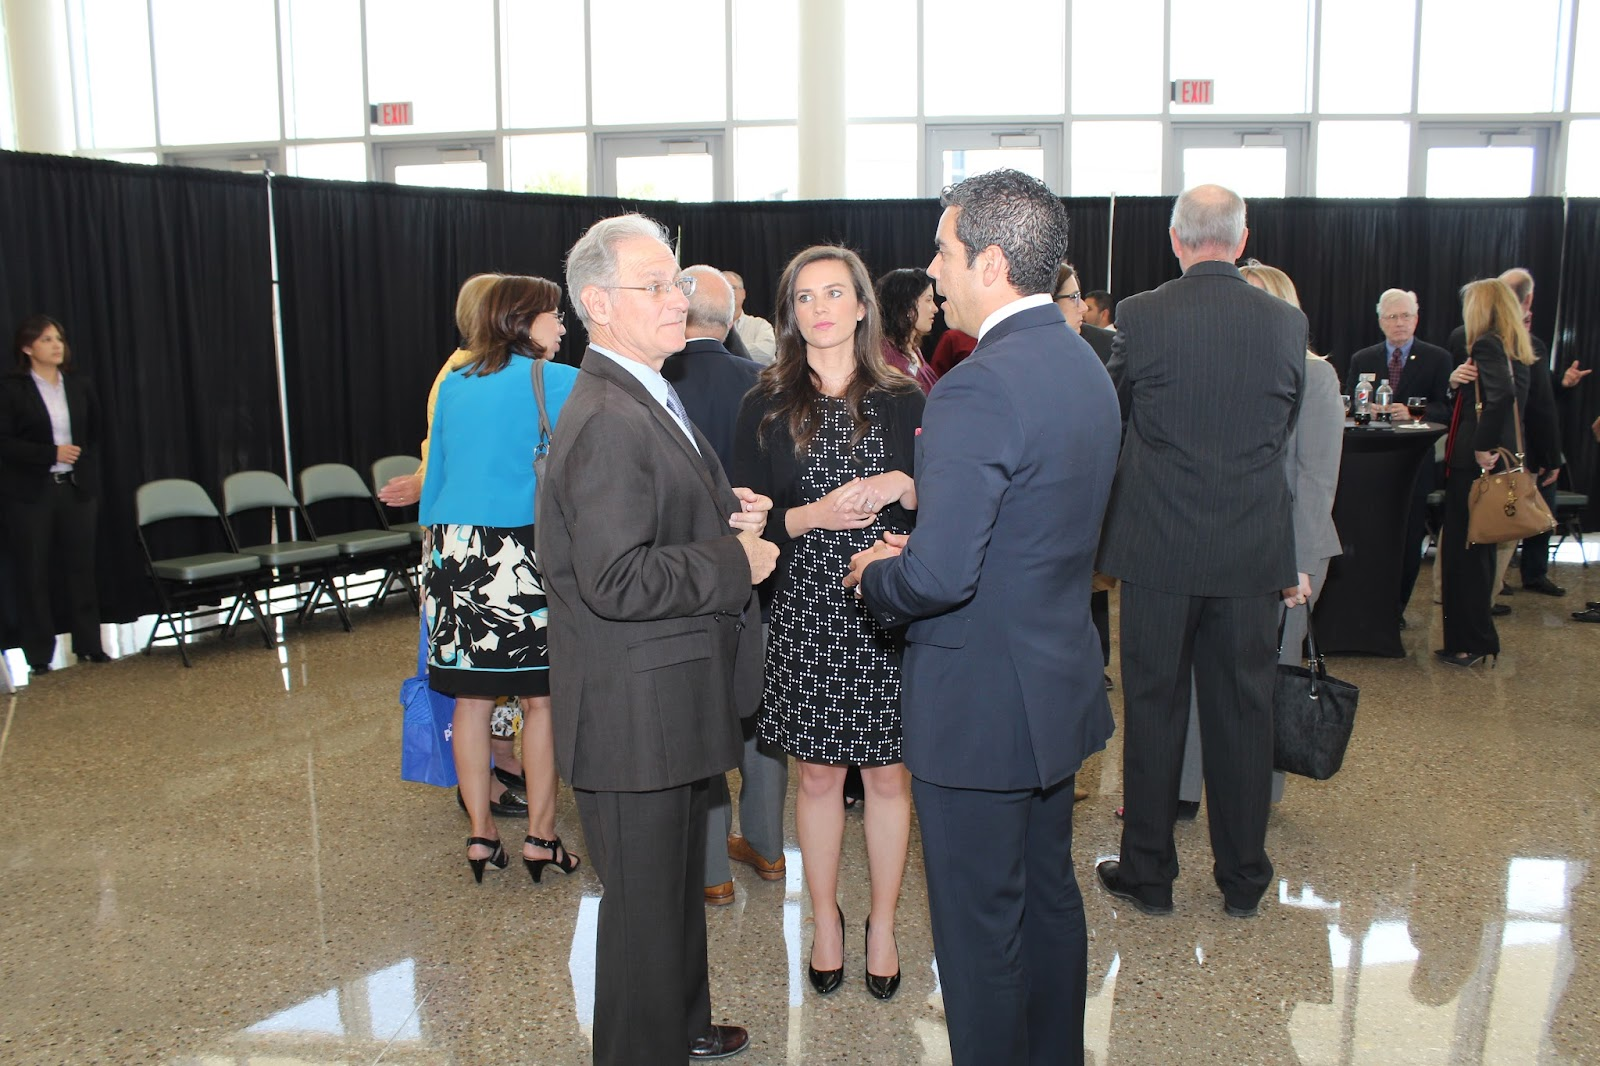 2016 State of the City - IMG_1943.JPG